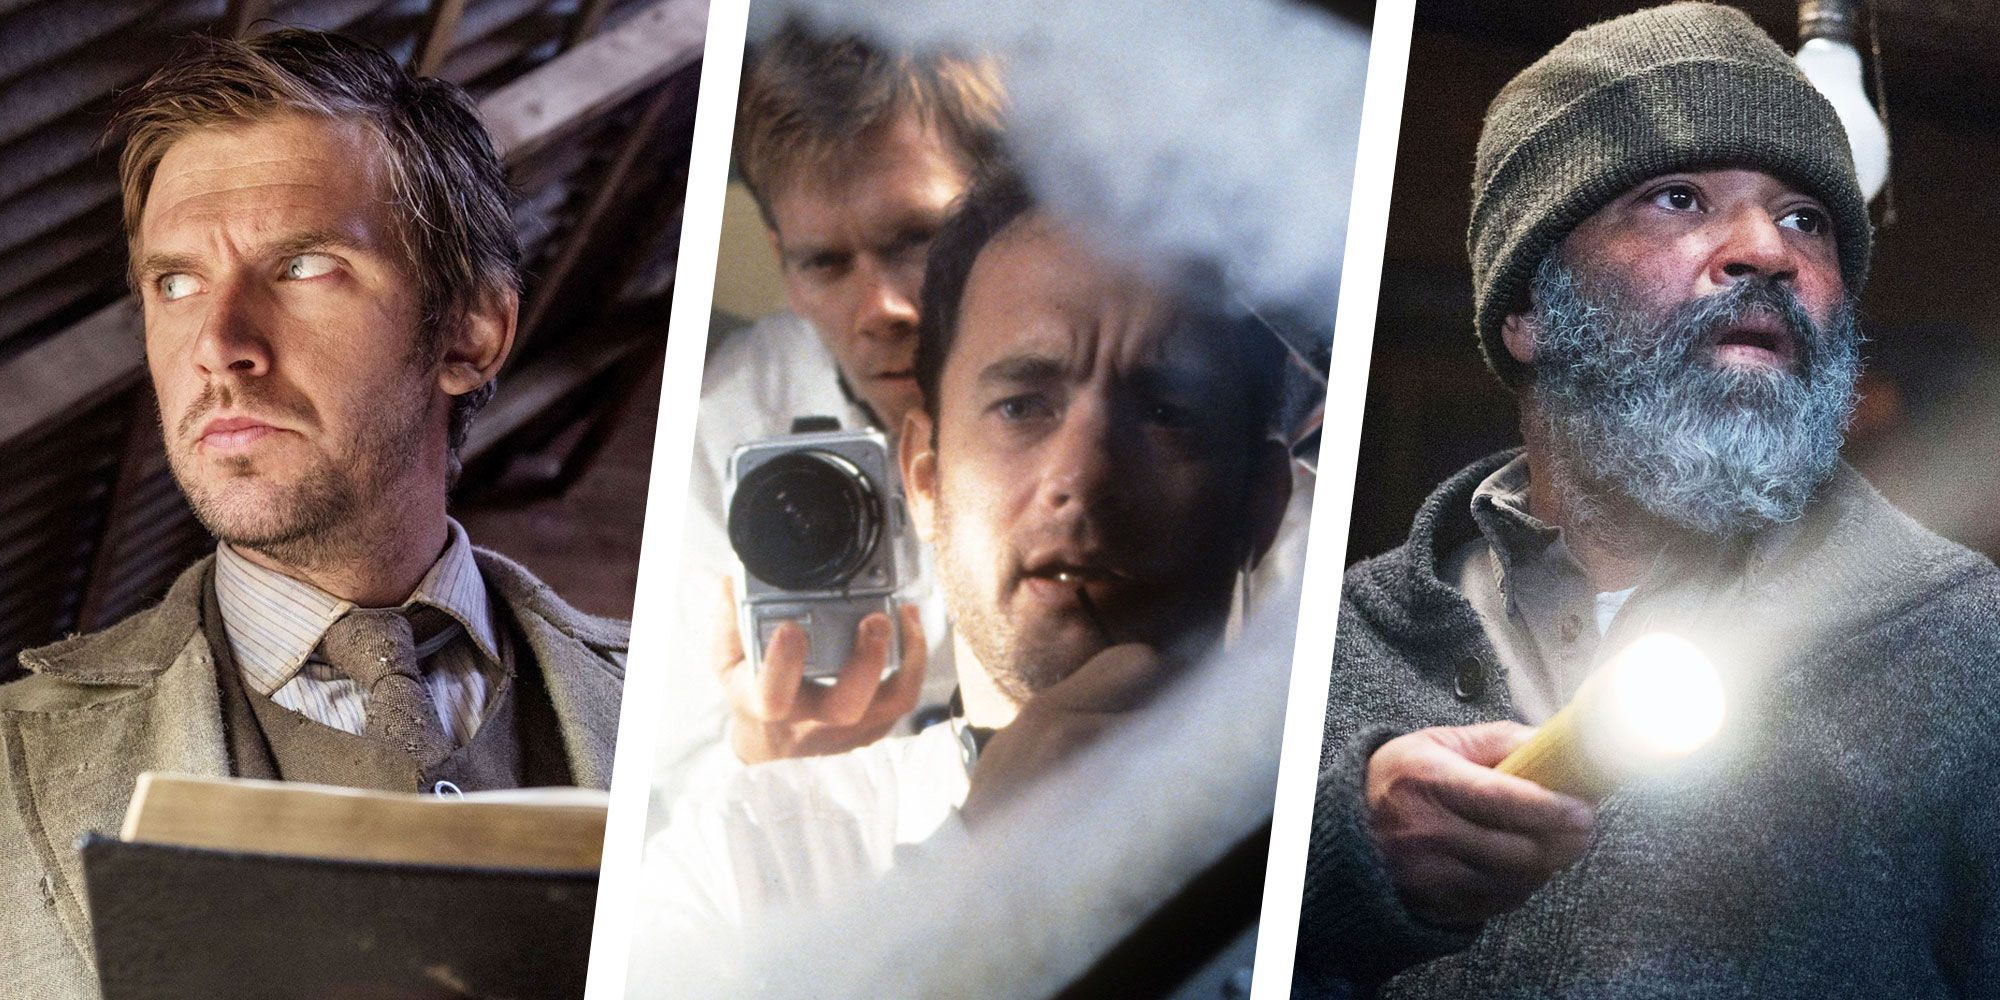 The 20 Best Thrillers You Can Watch on Netflix Right Now